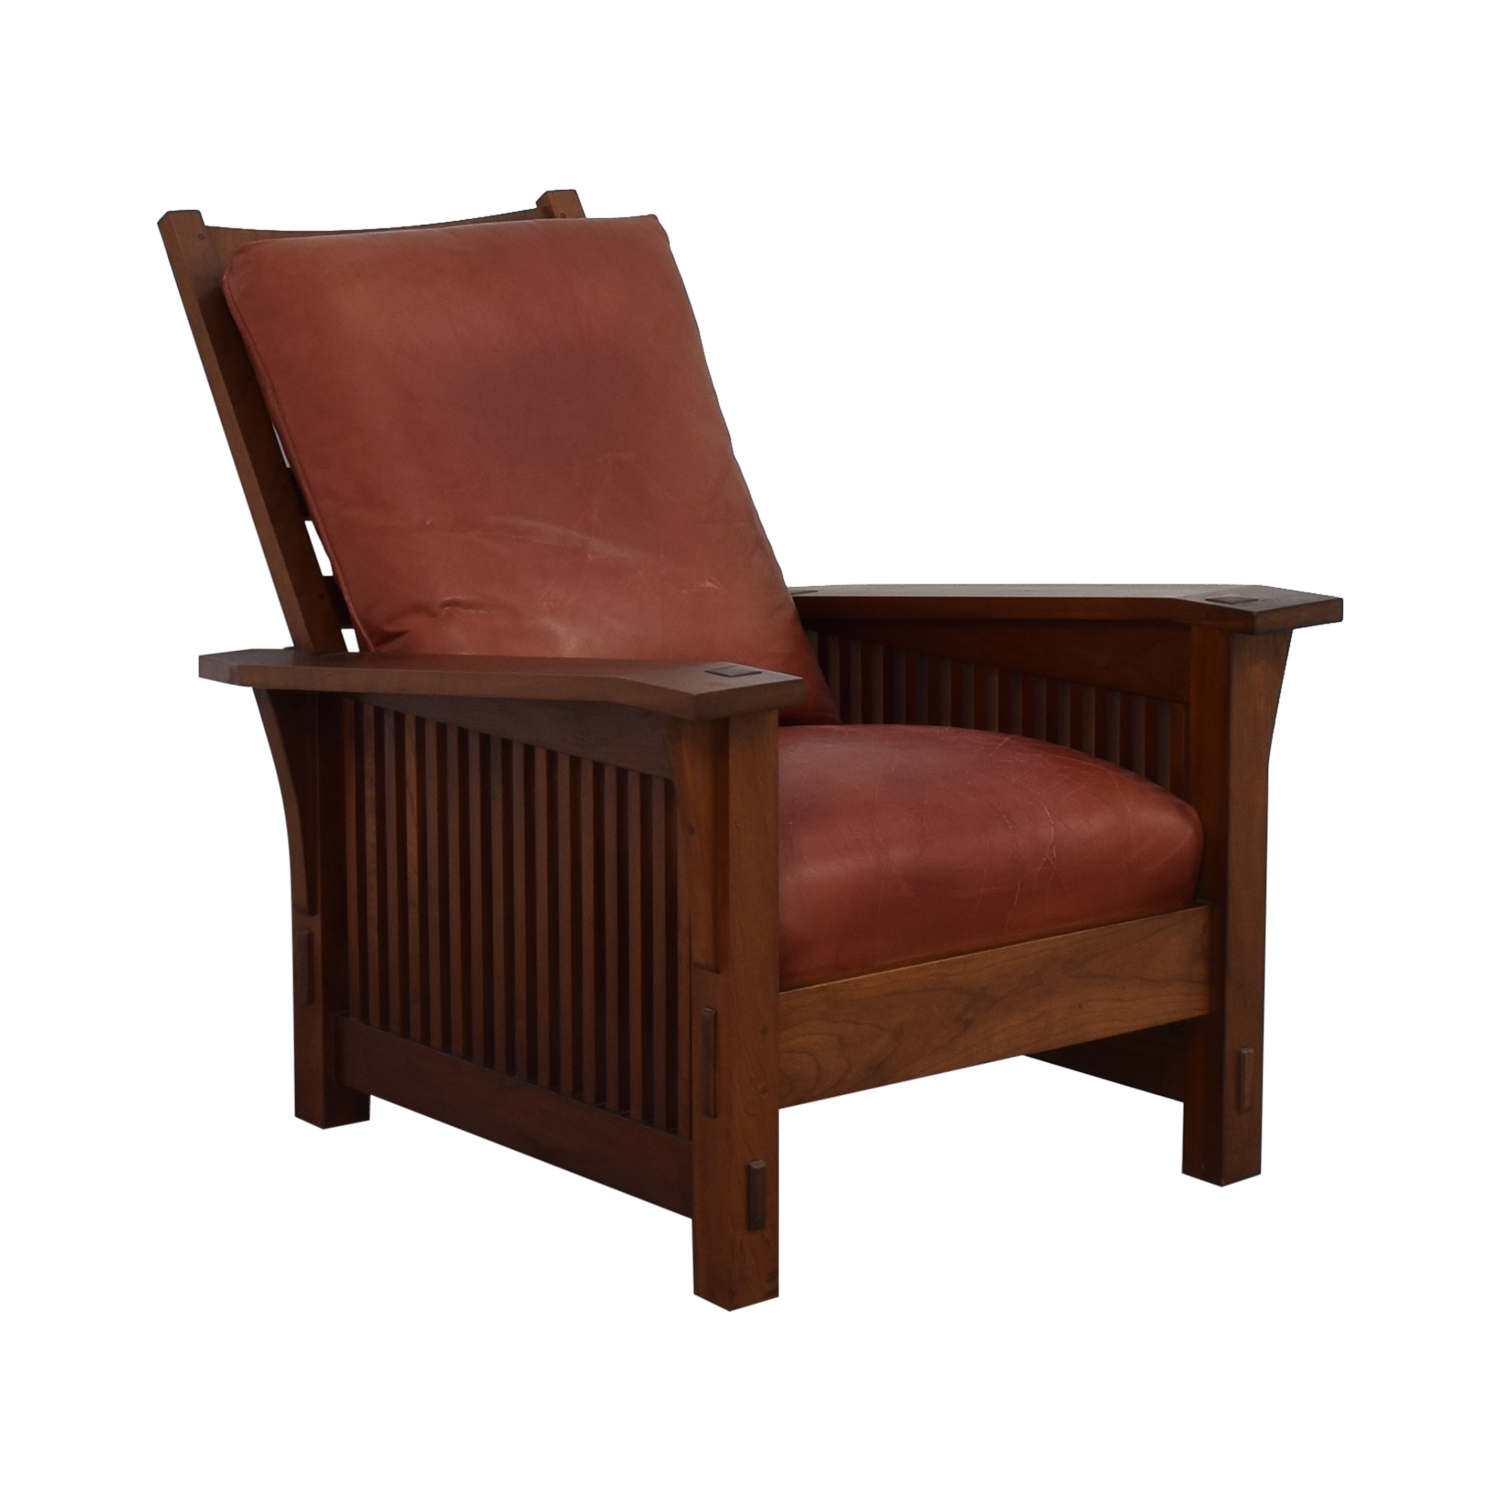 Stickley Furniture Stickley Spindle Morris Chair coupon